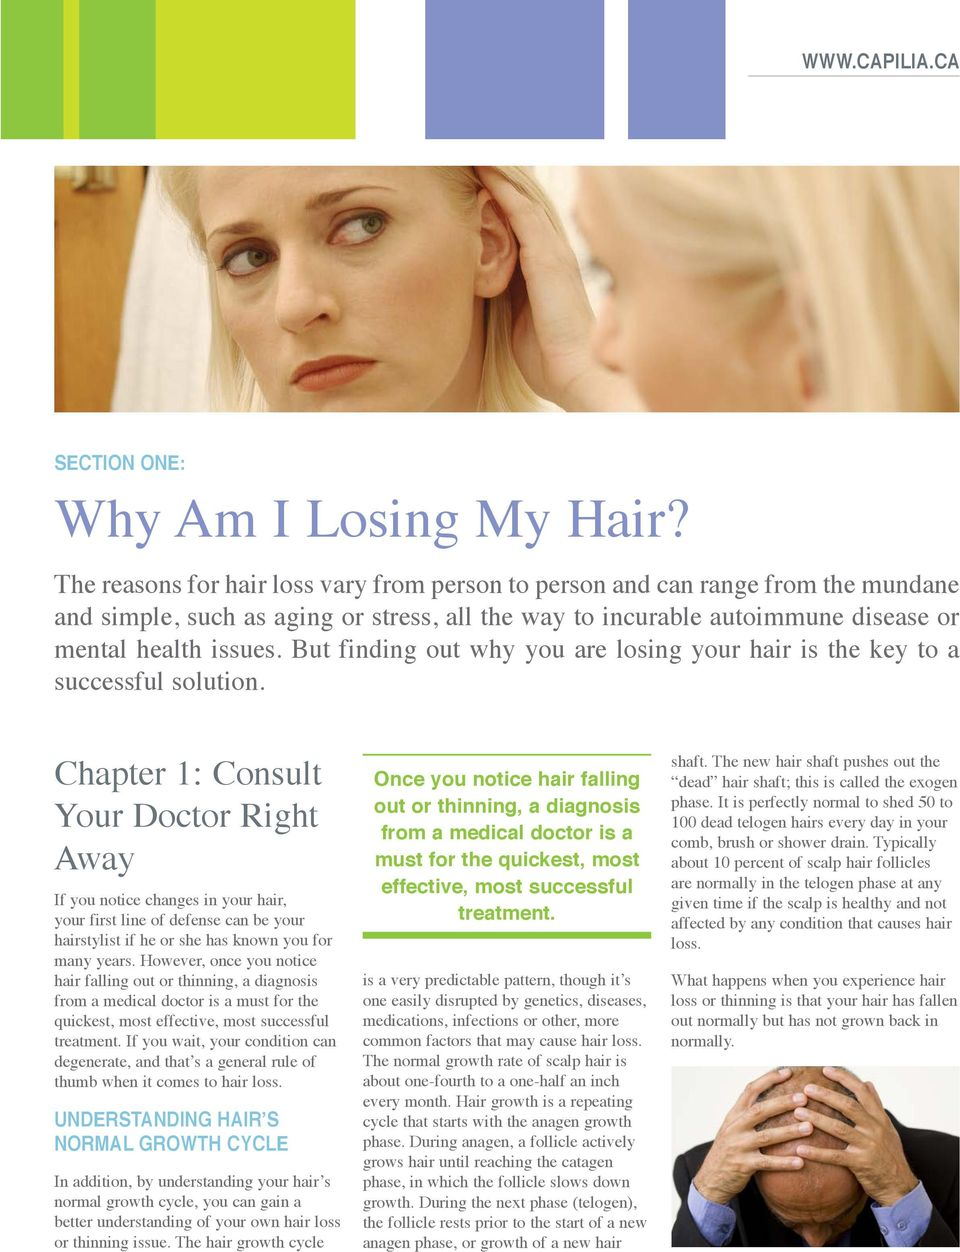 But finding out why you are losing your hair is the key to a successful solution.